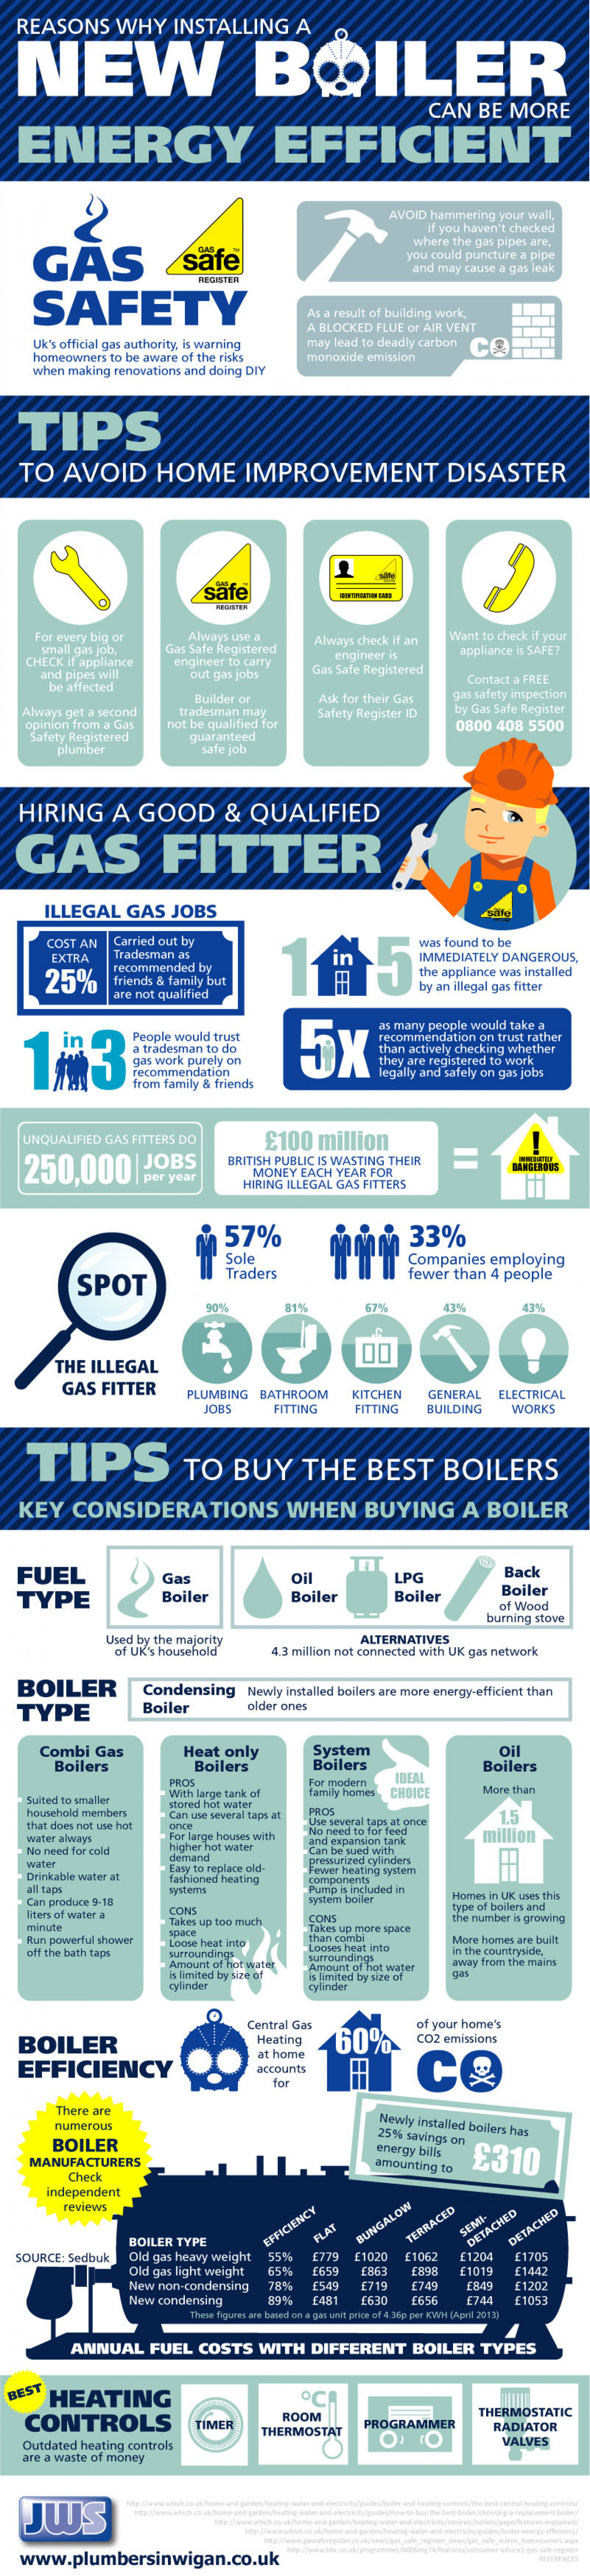 Reasons Why Installing a New Boiler can be More Energy Efficient Infographic